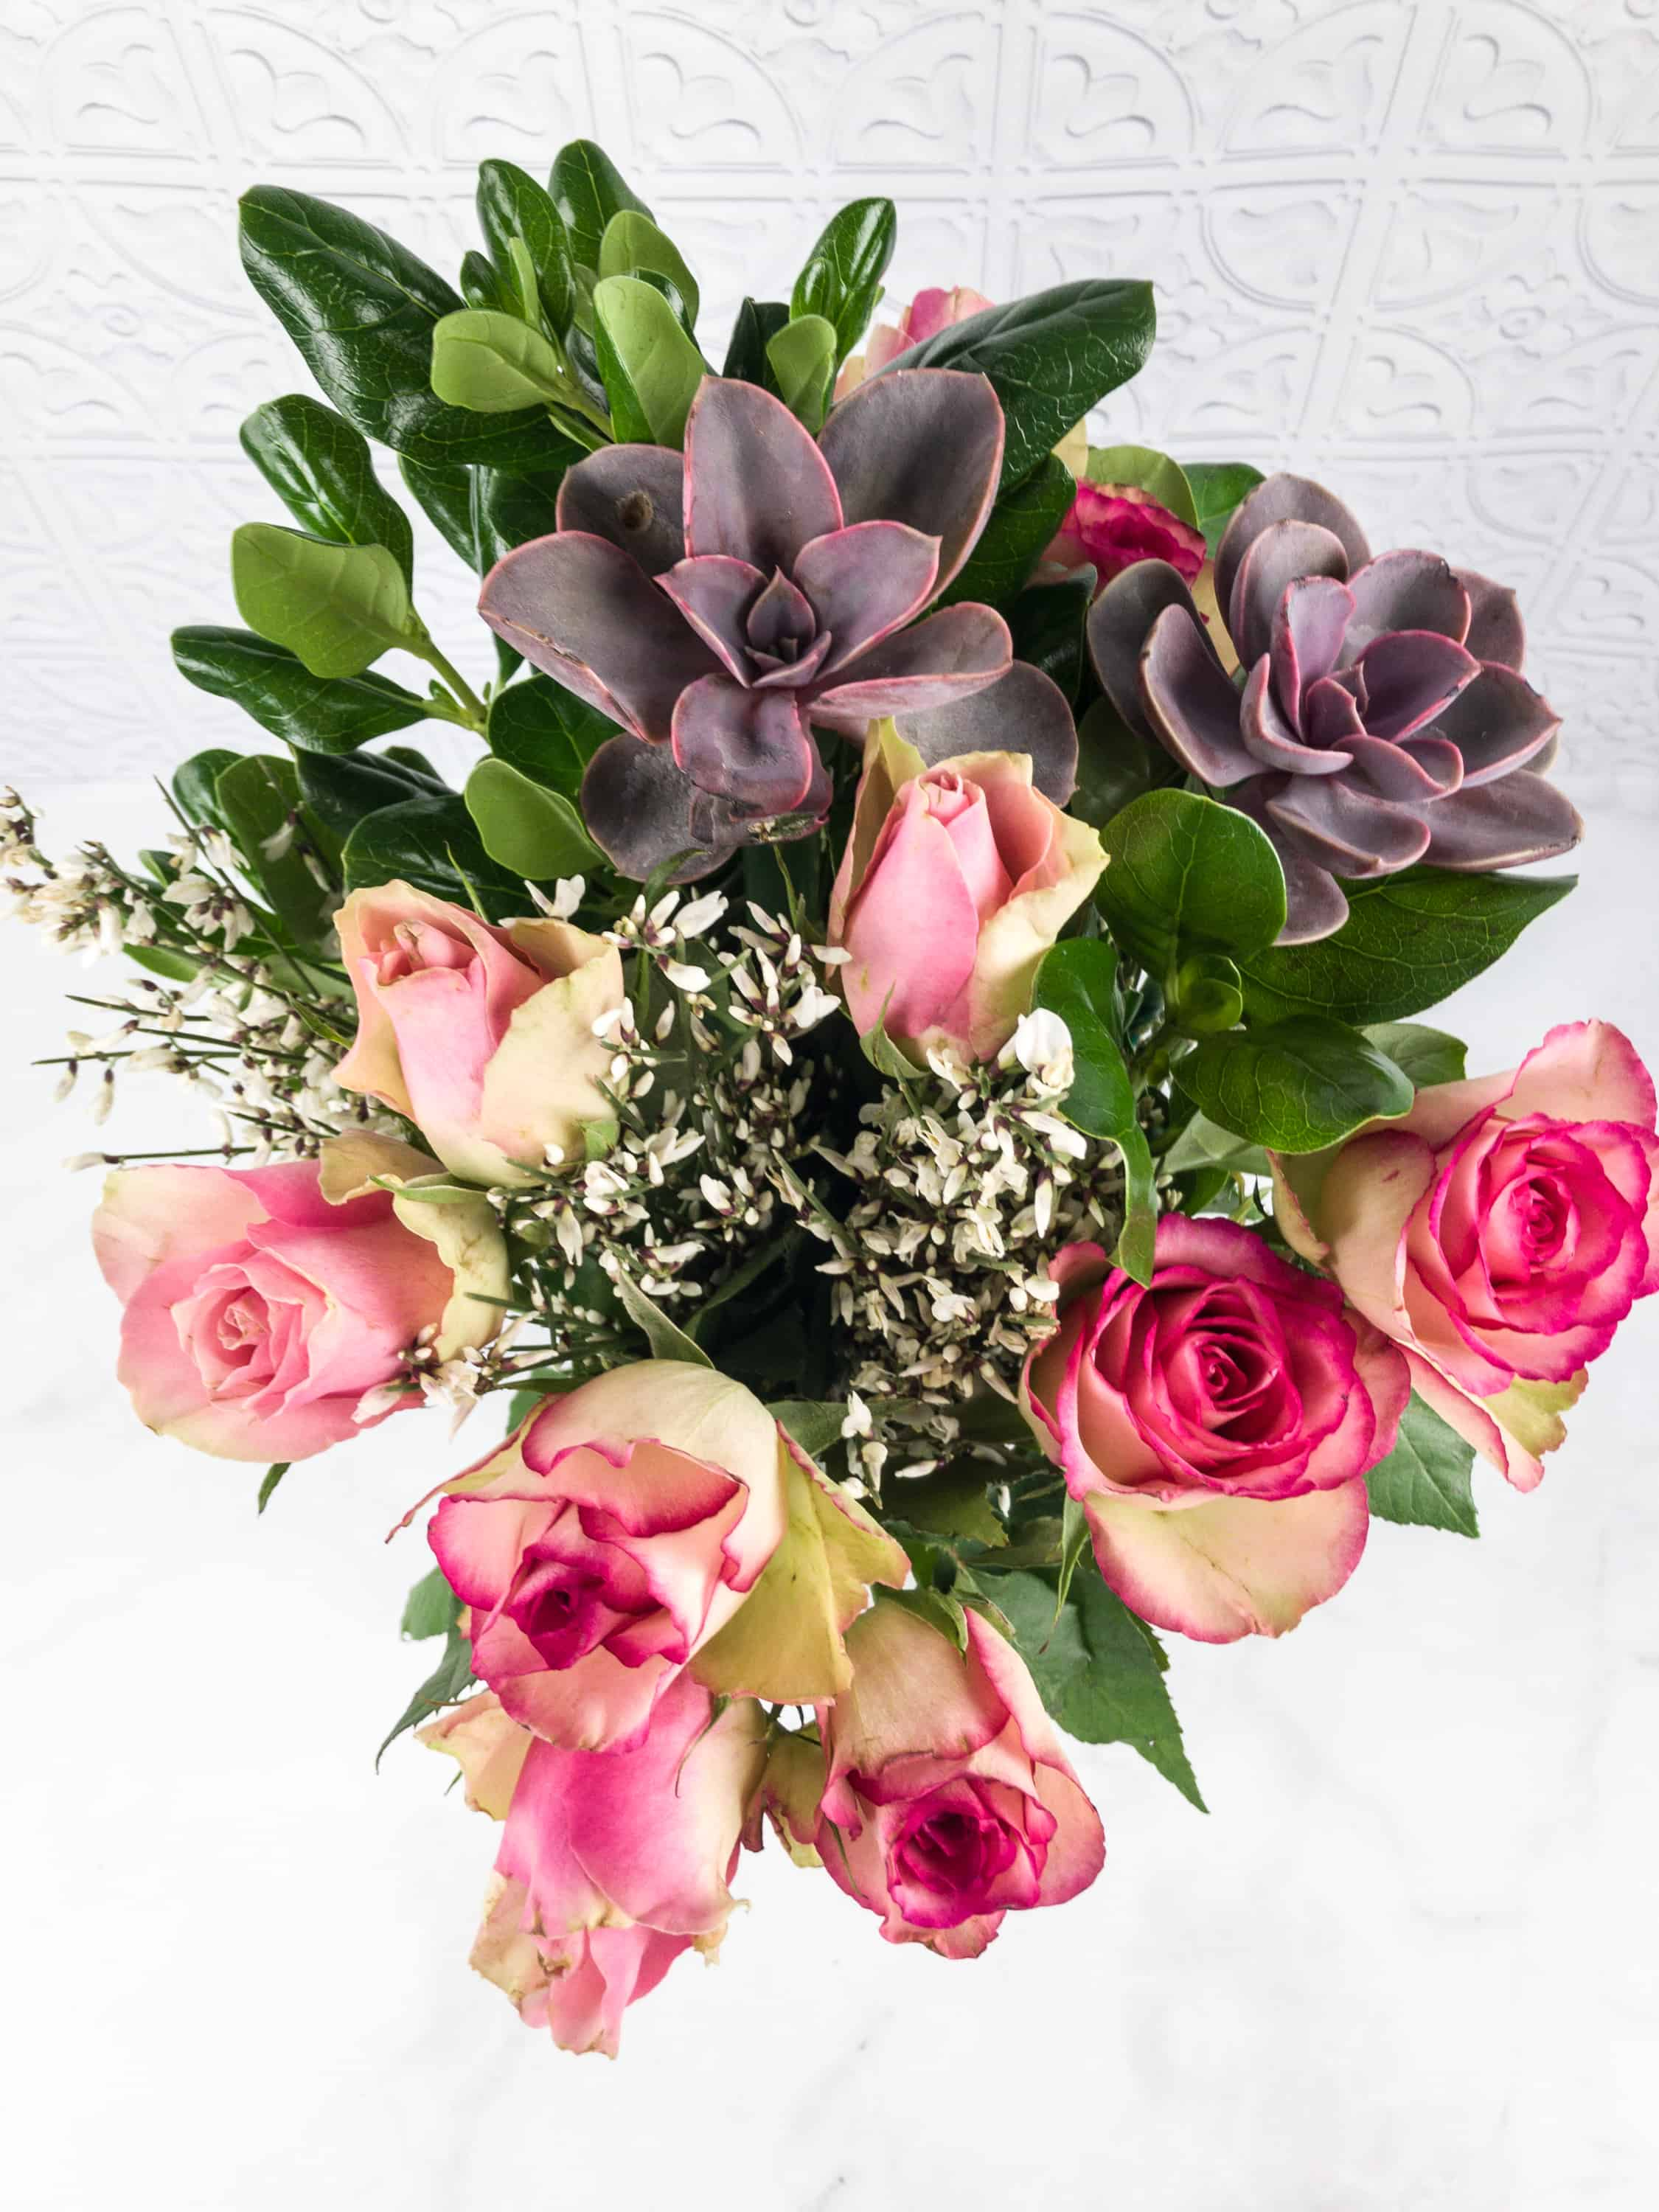 The bouqs february 2018 review coupon hello subscription i trimmed the stems placed them in water with the included plant food and wait for it waited 24 hours that is when your flowers will look the best izmirmasajfo